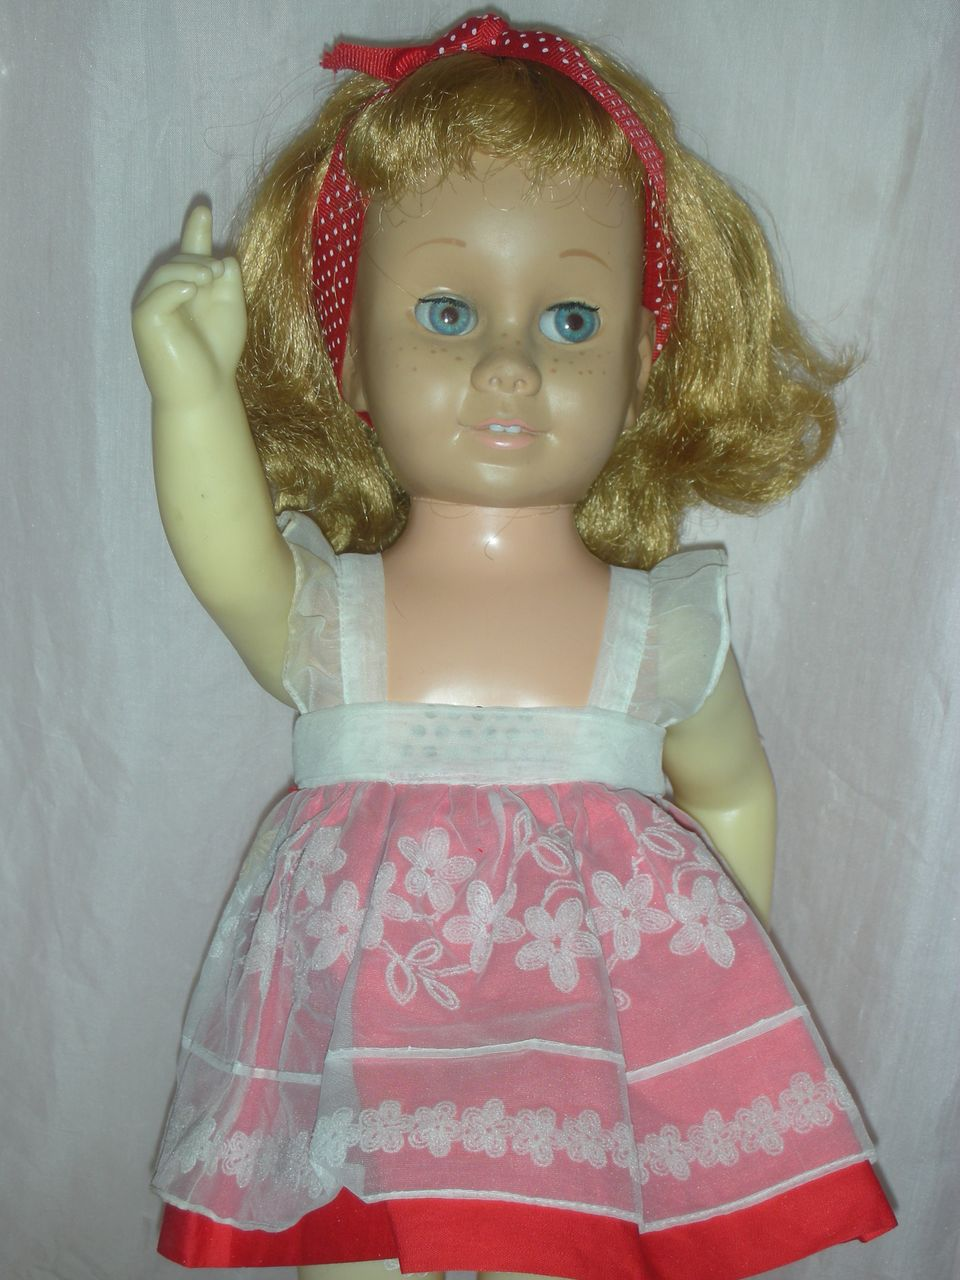 Vintage Mattel Chatty Cathy Doll 1960s Blonde Original Dress